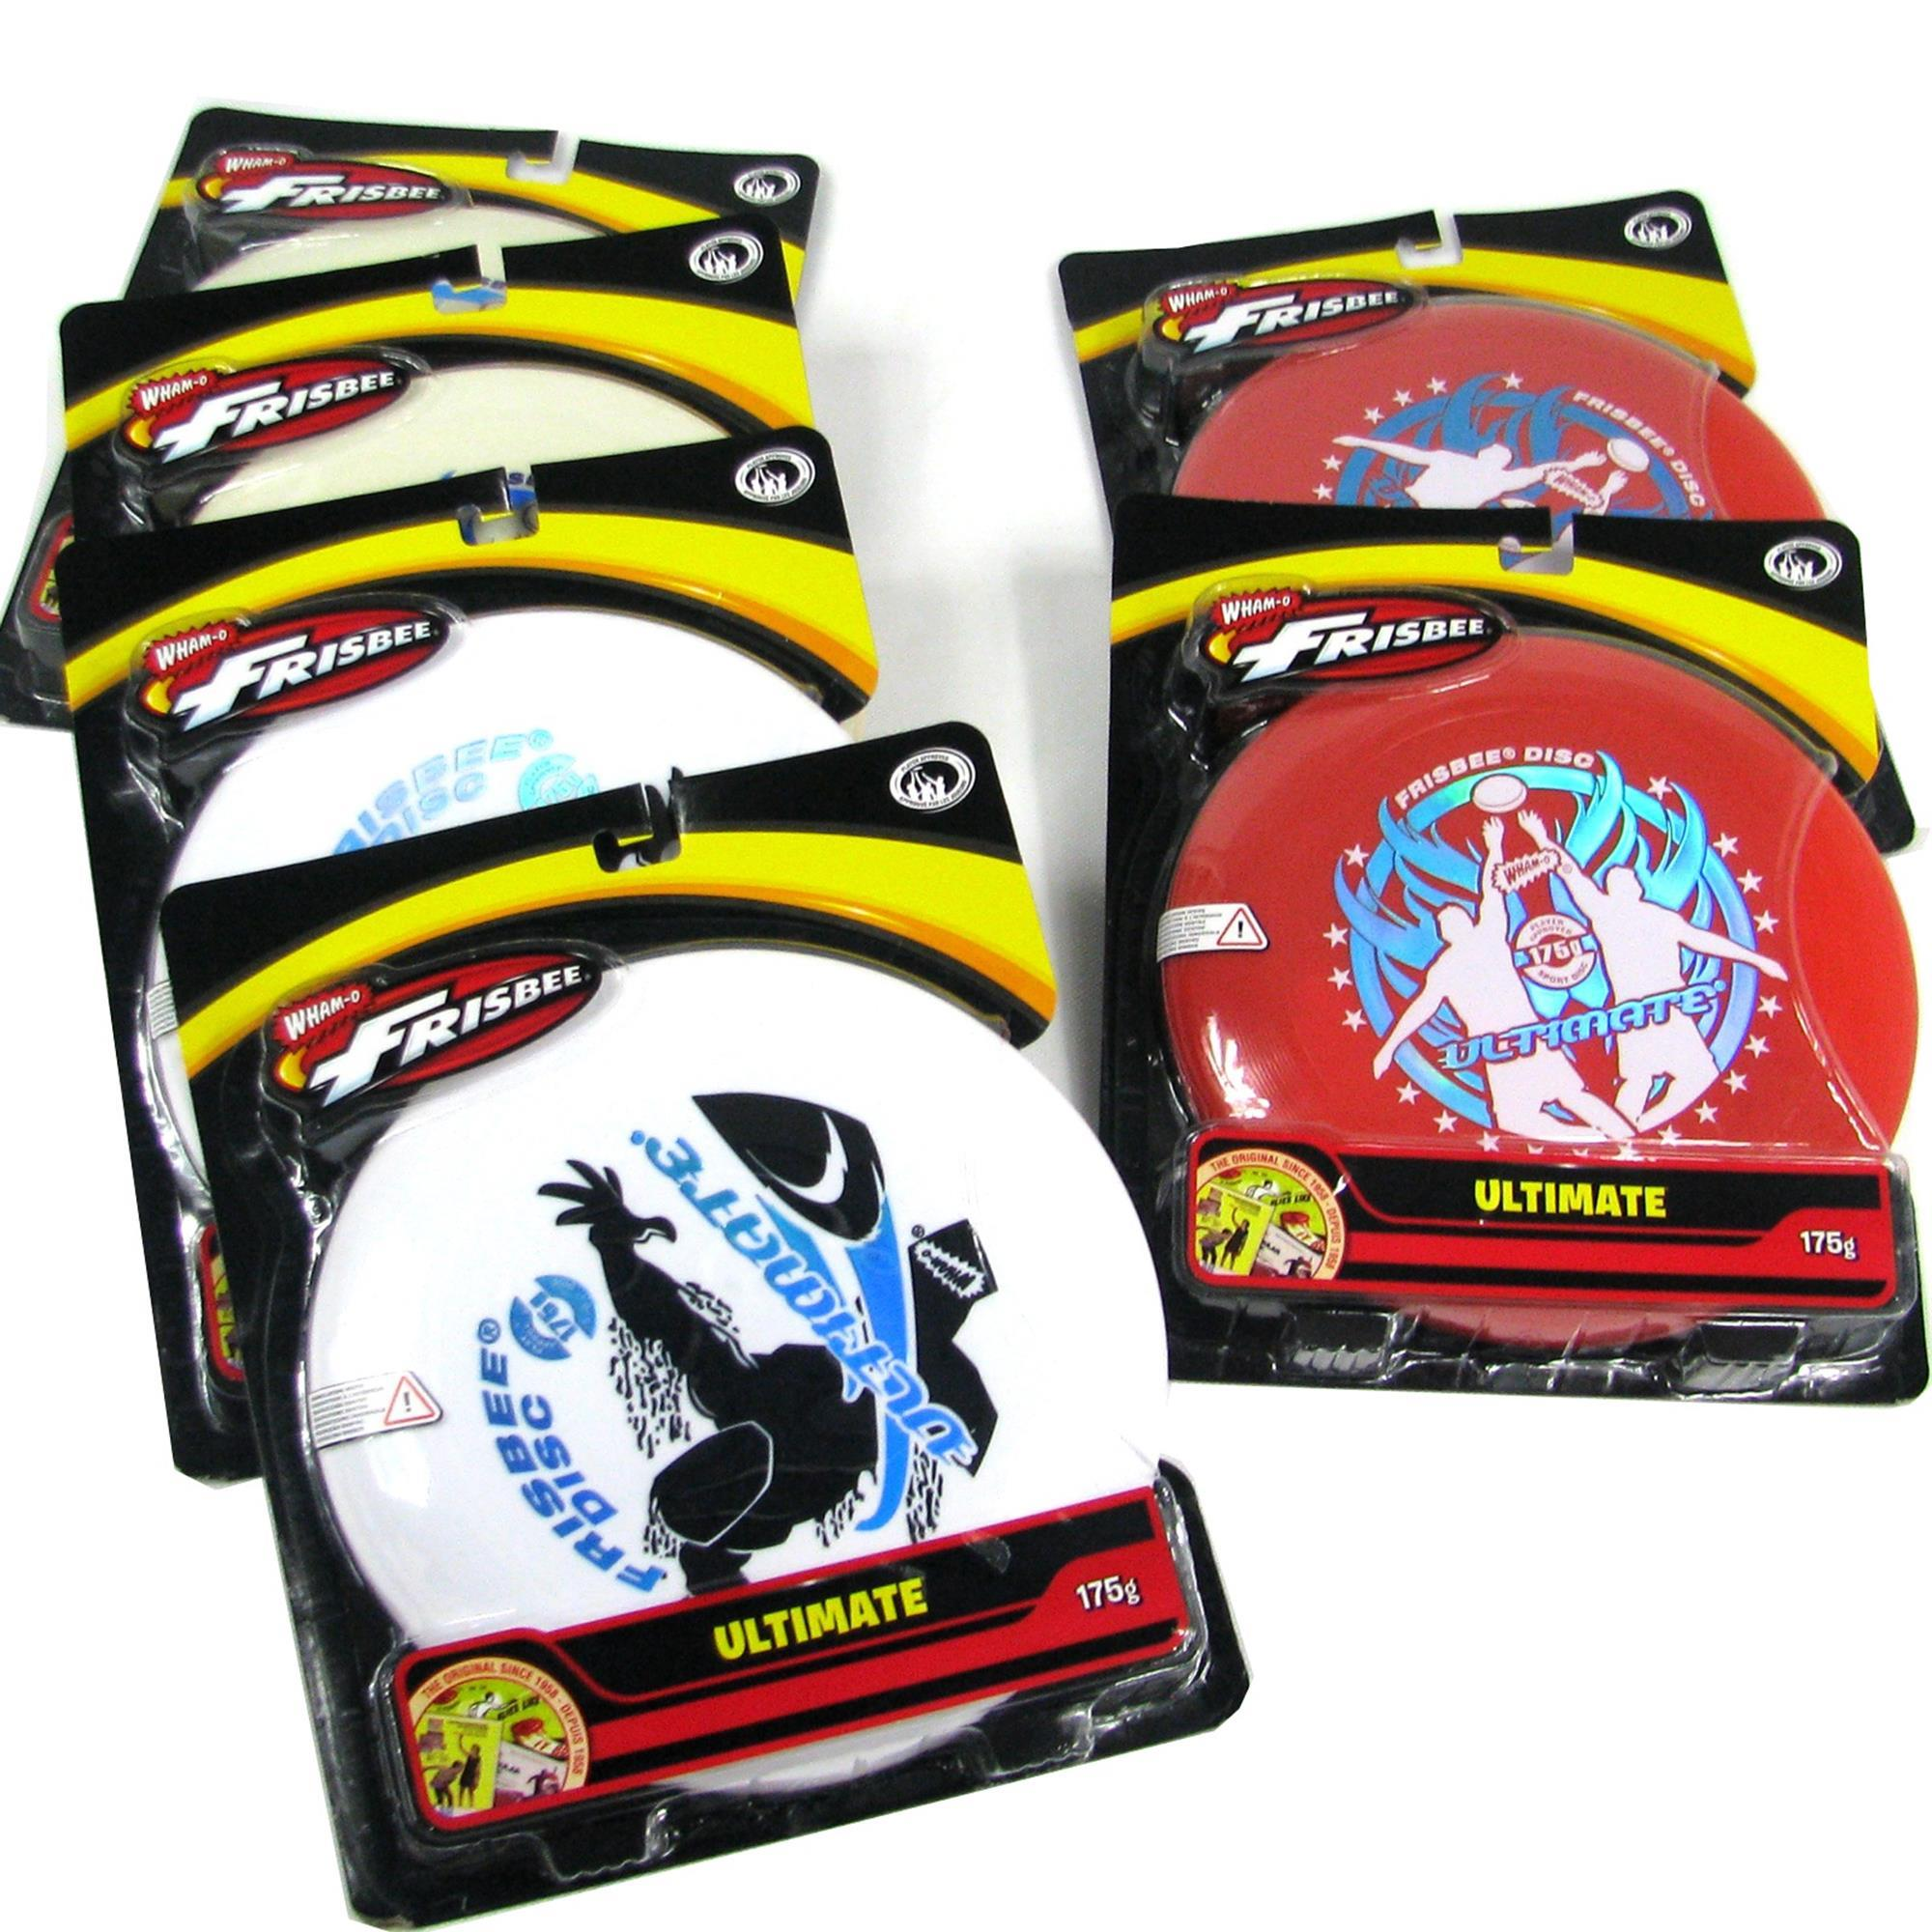 6x WHAM-O FRISBEE Wurfscheibe Ultimate 175g